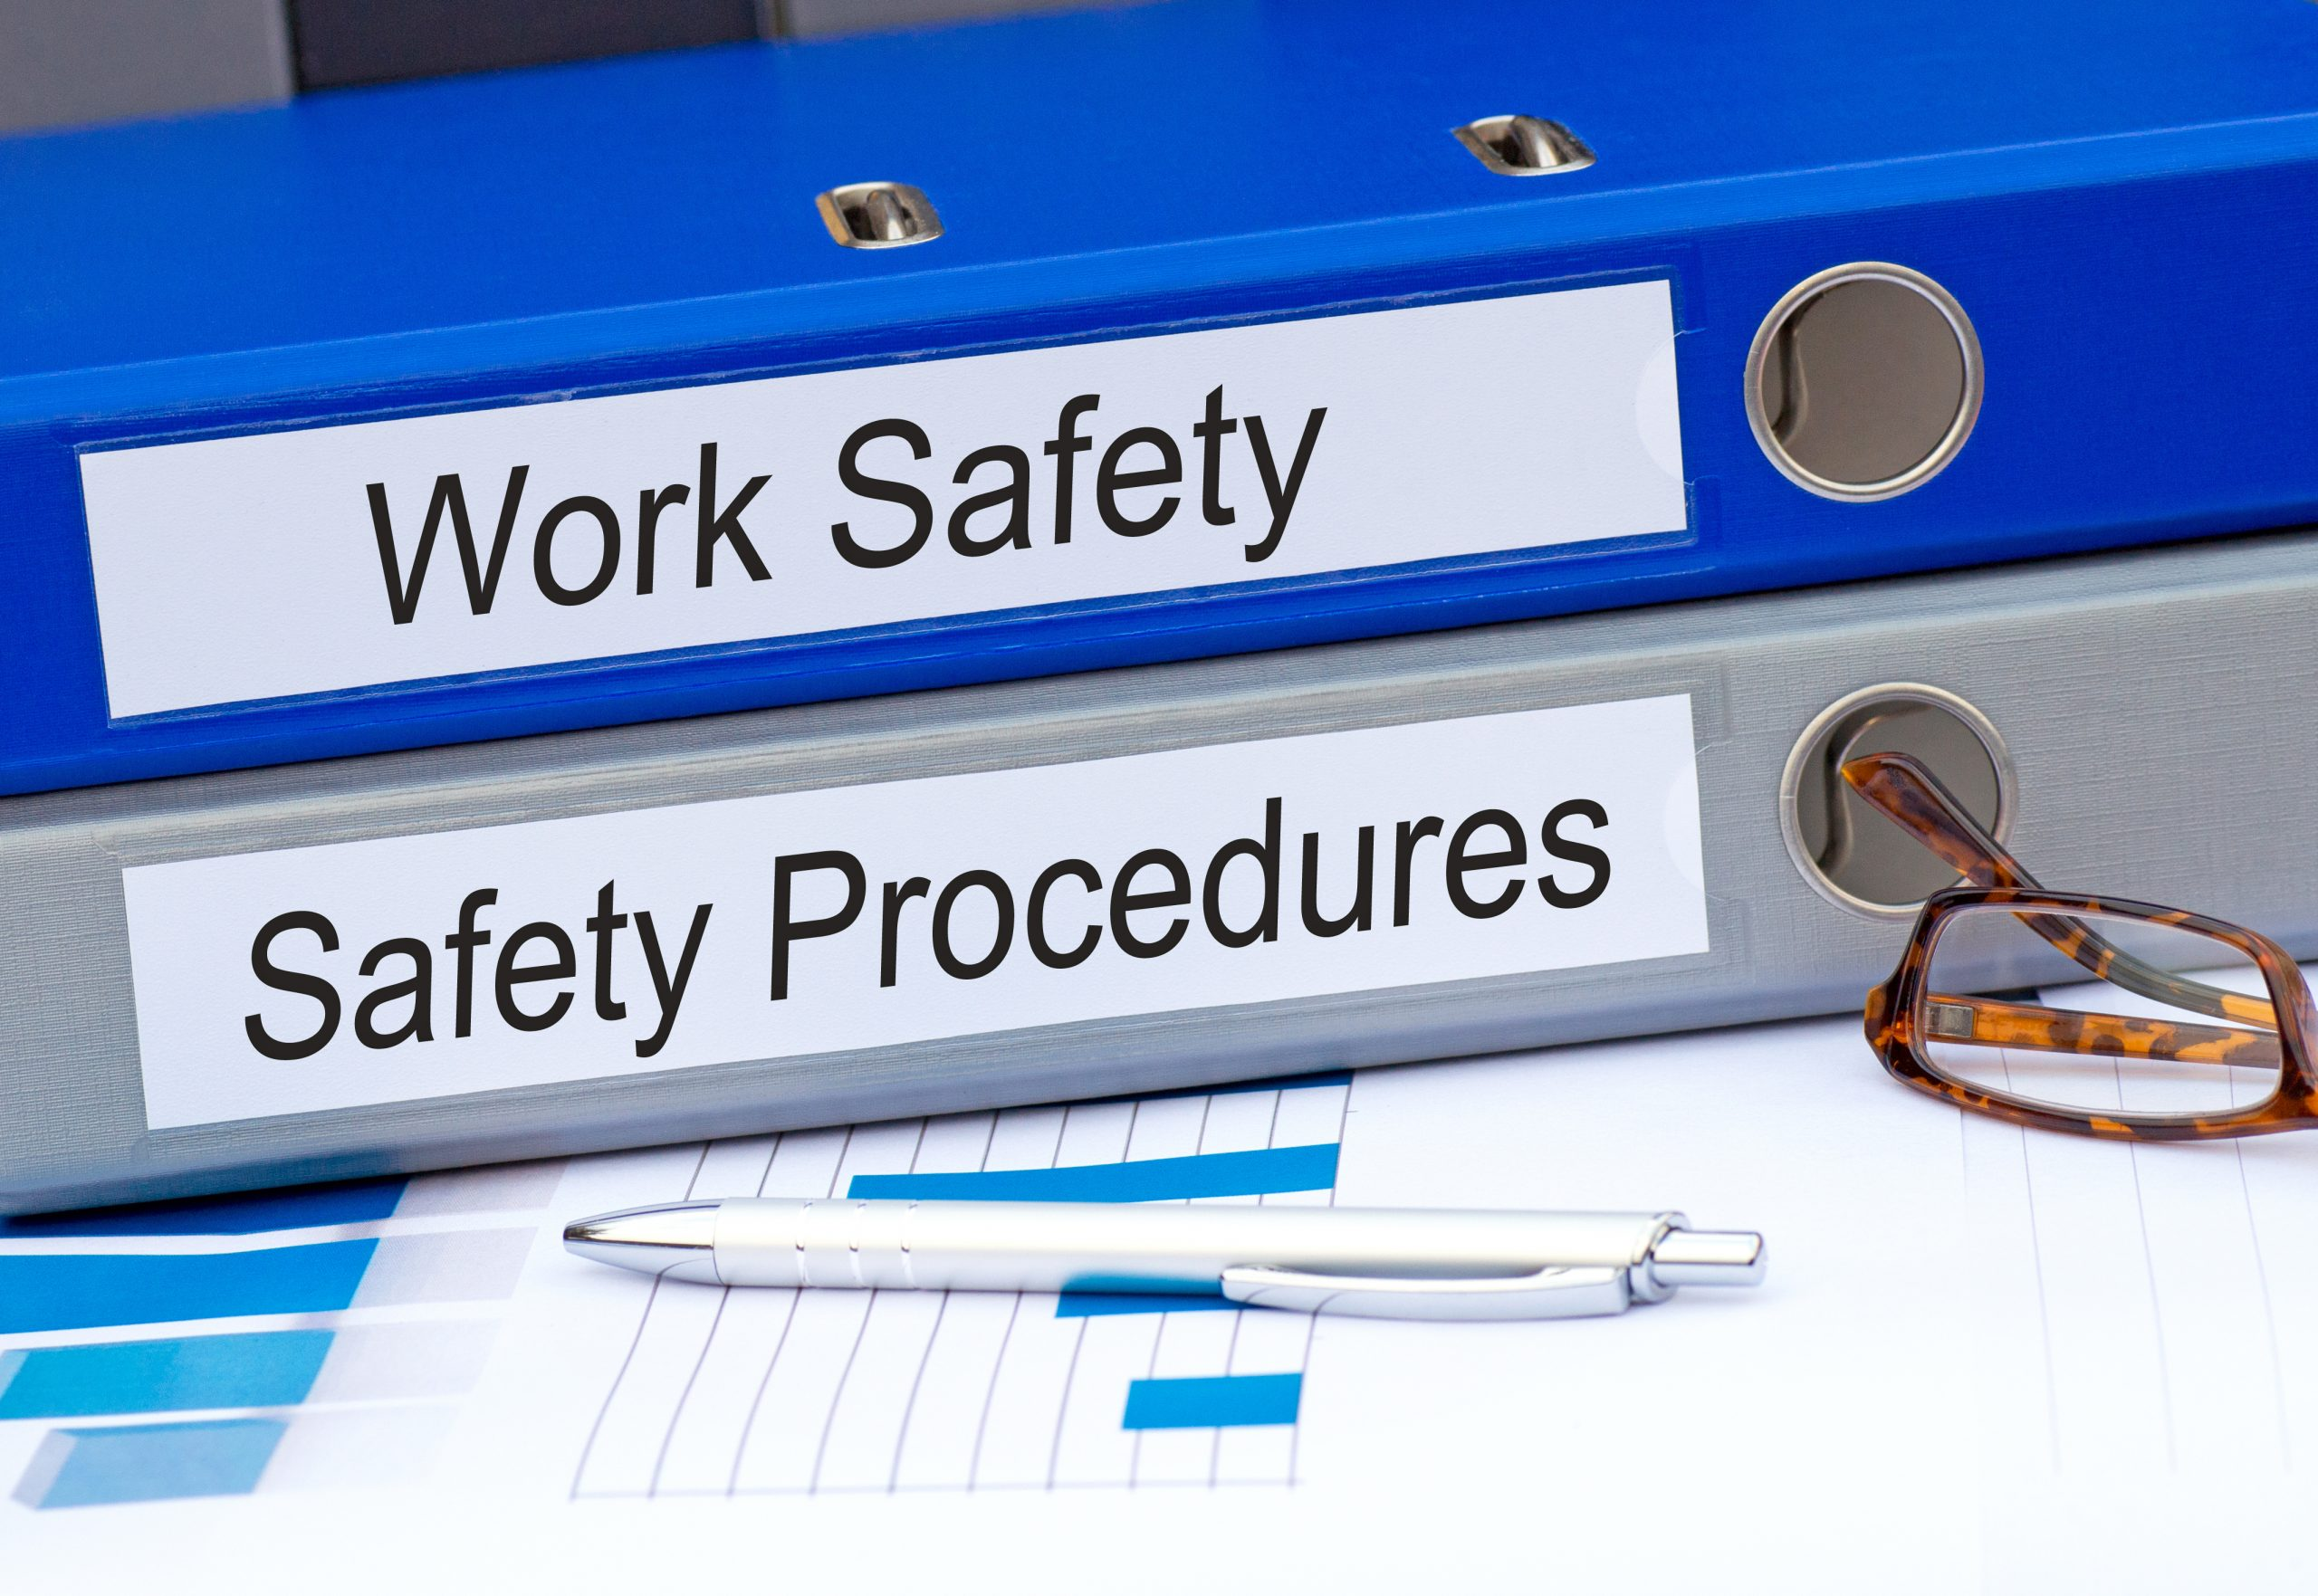 workplace safety and safety procedures folders on a desk